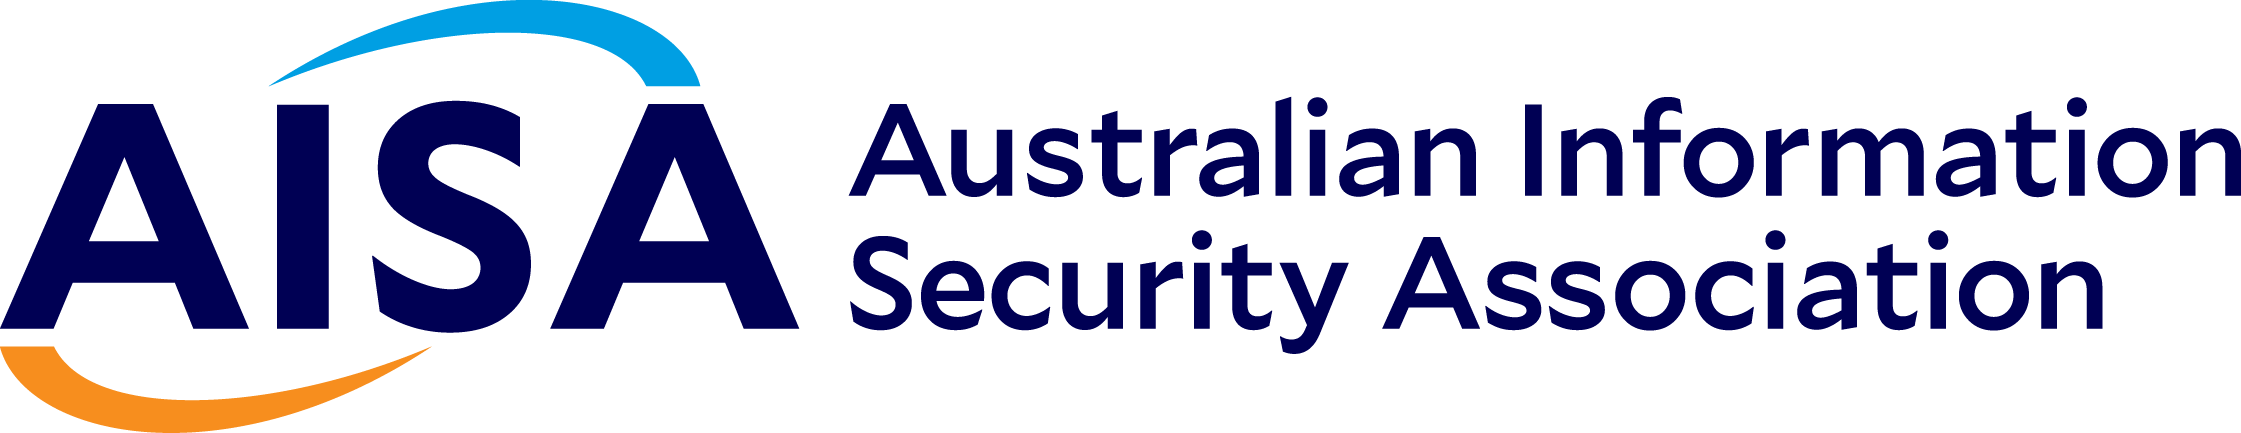 AISA Australian Information Security Association logo